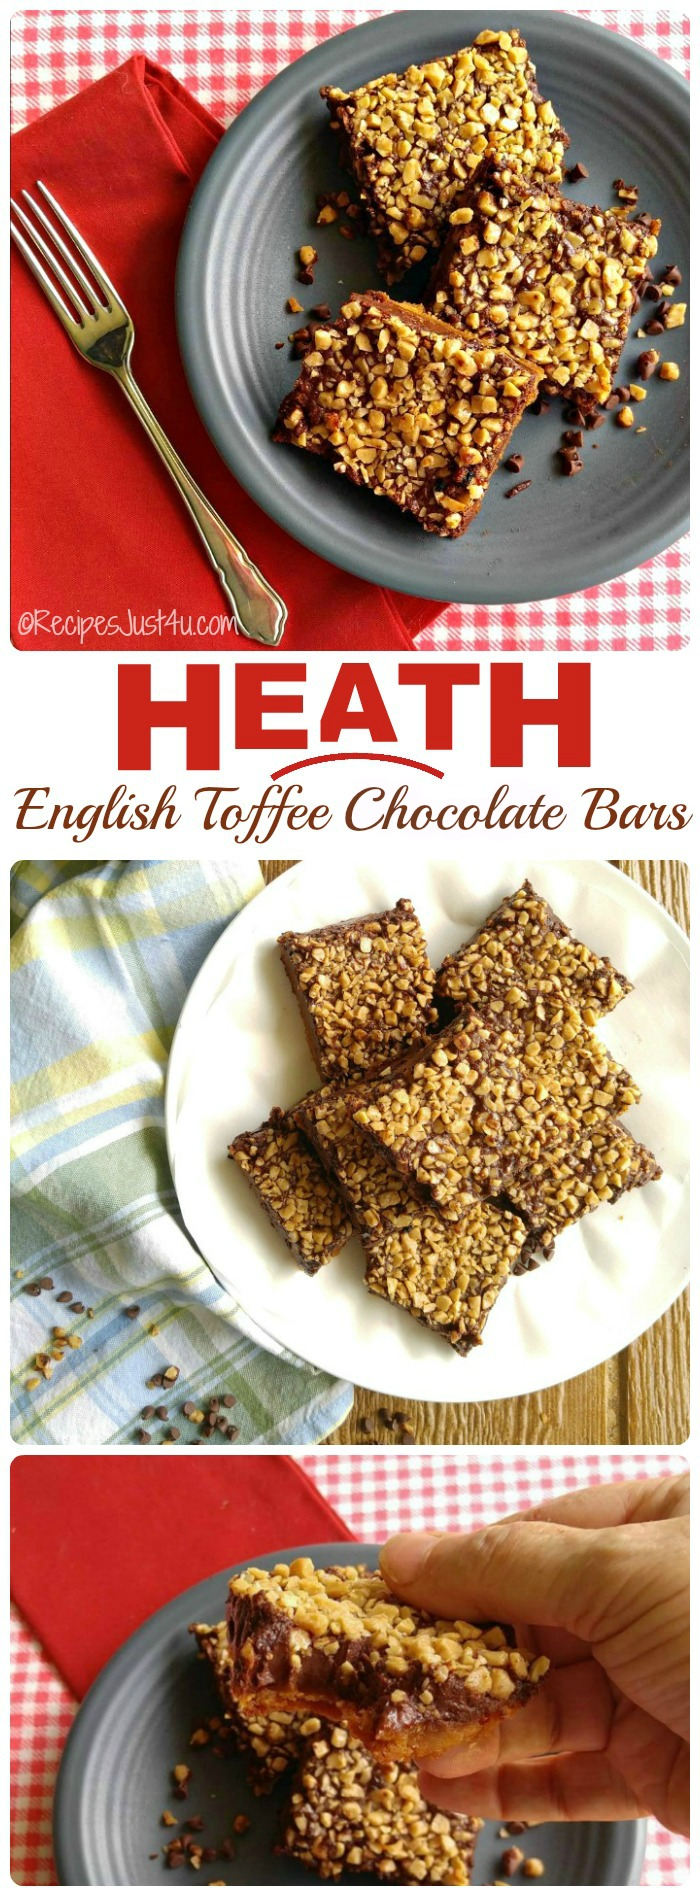 These Heath English toffee chocolate bars are so decadent. They make the perfect sweet treat. recipesjust4u.com